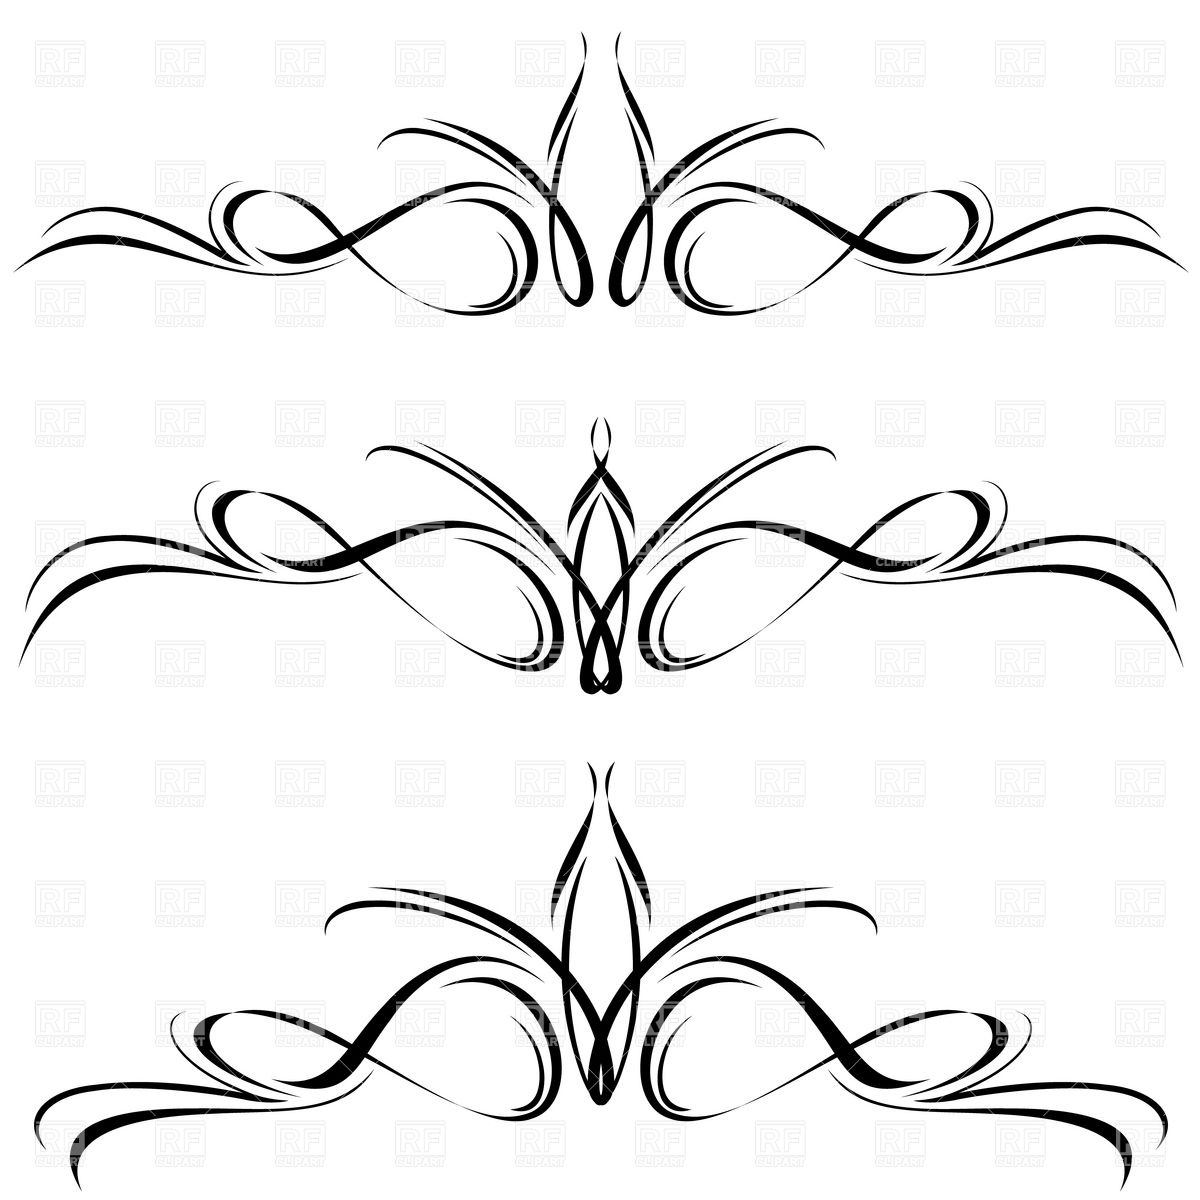 Line Art Designs For Borders : Free ornament vector lines images